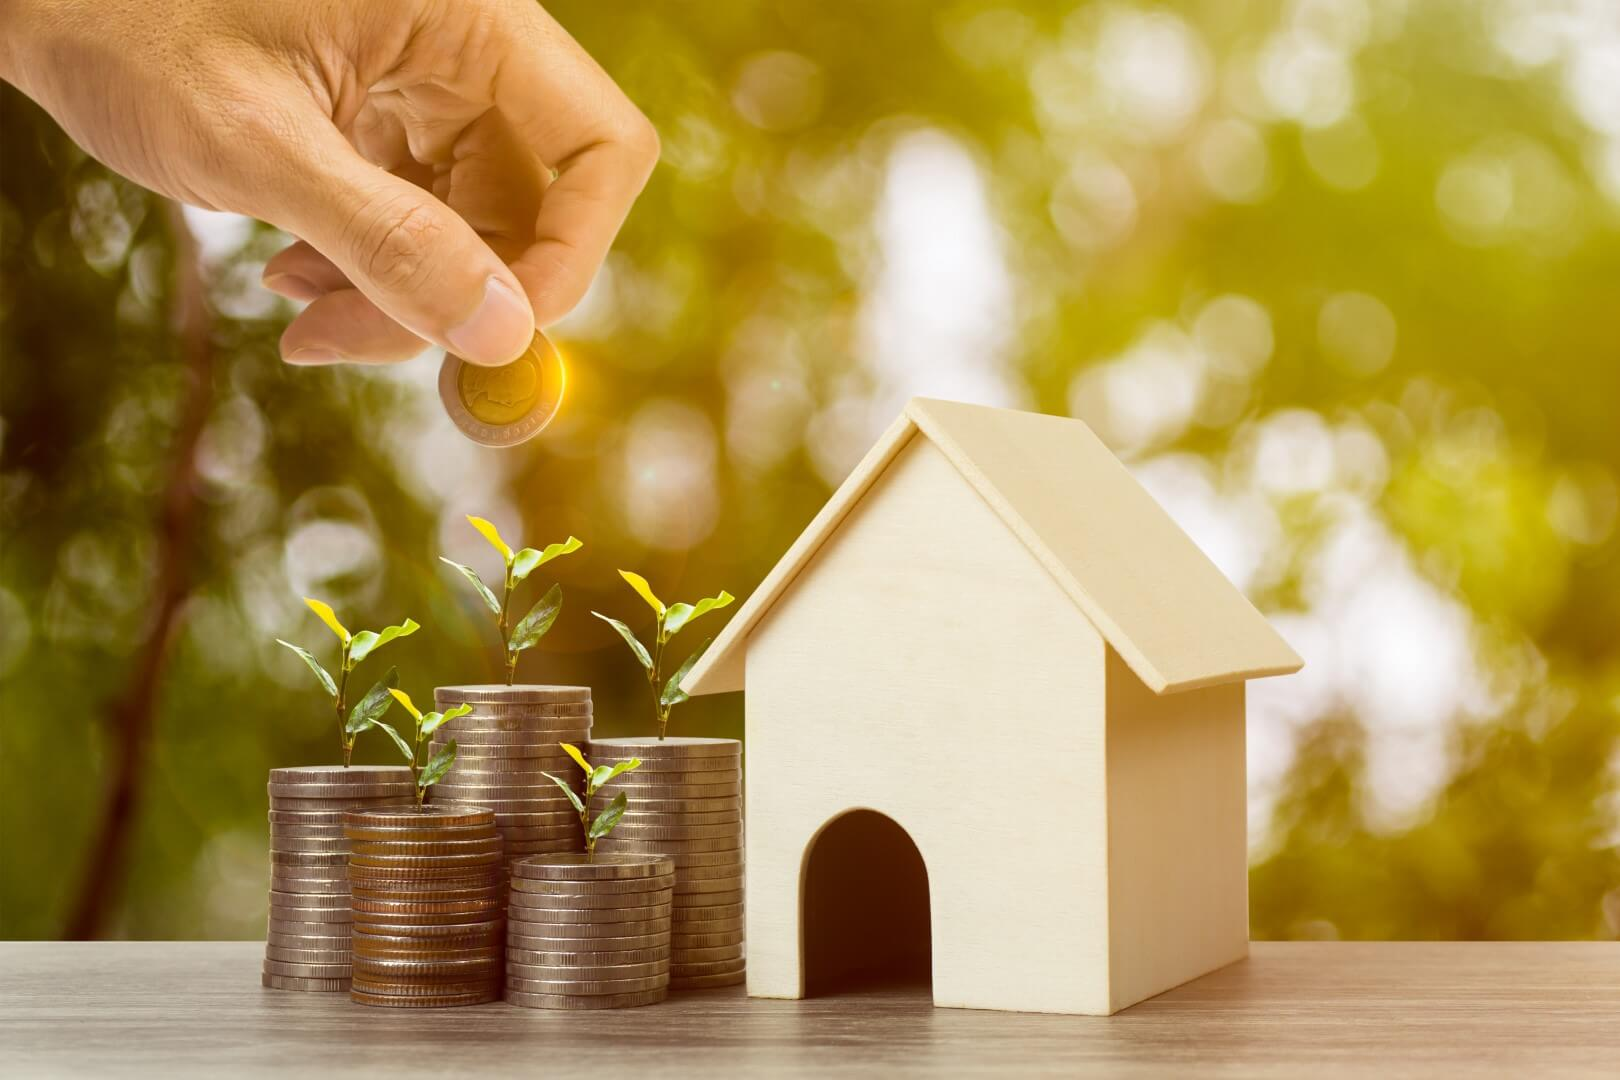 Invest with confidence in CMI Mortgage Investment Corporation (MIC) funds